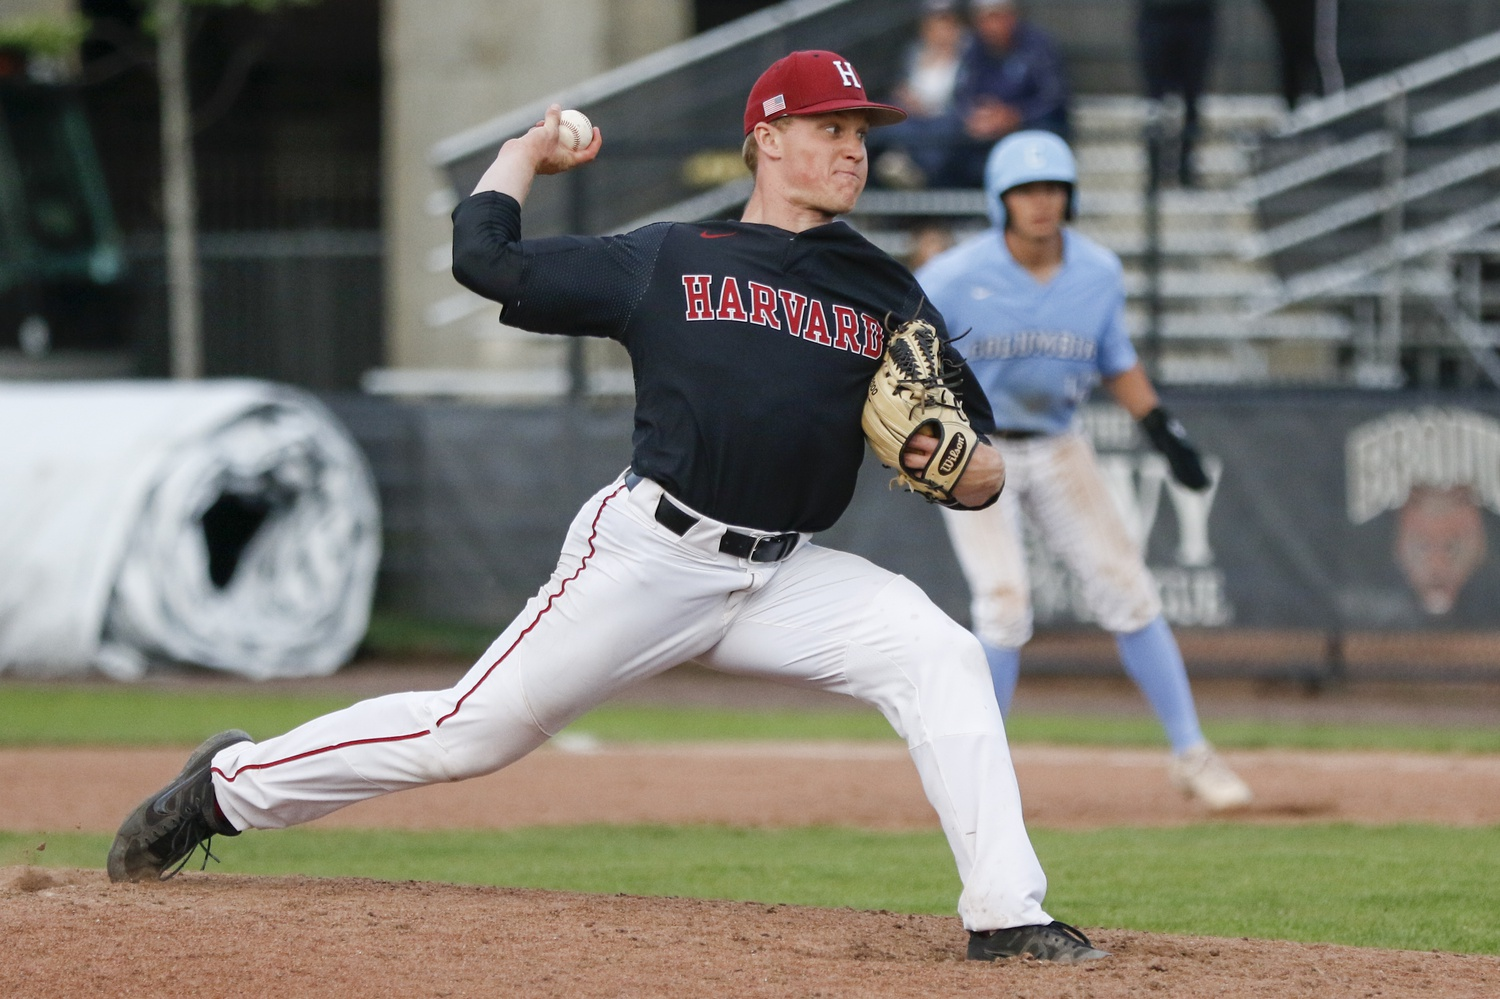 Junior reliever Kieran Shaw pitched three shutout innings to secure the victory on Sunday.